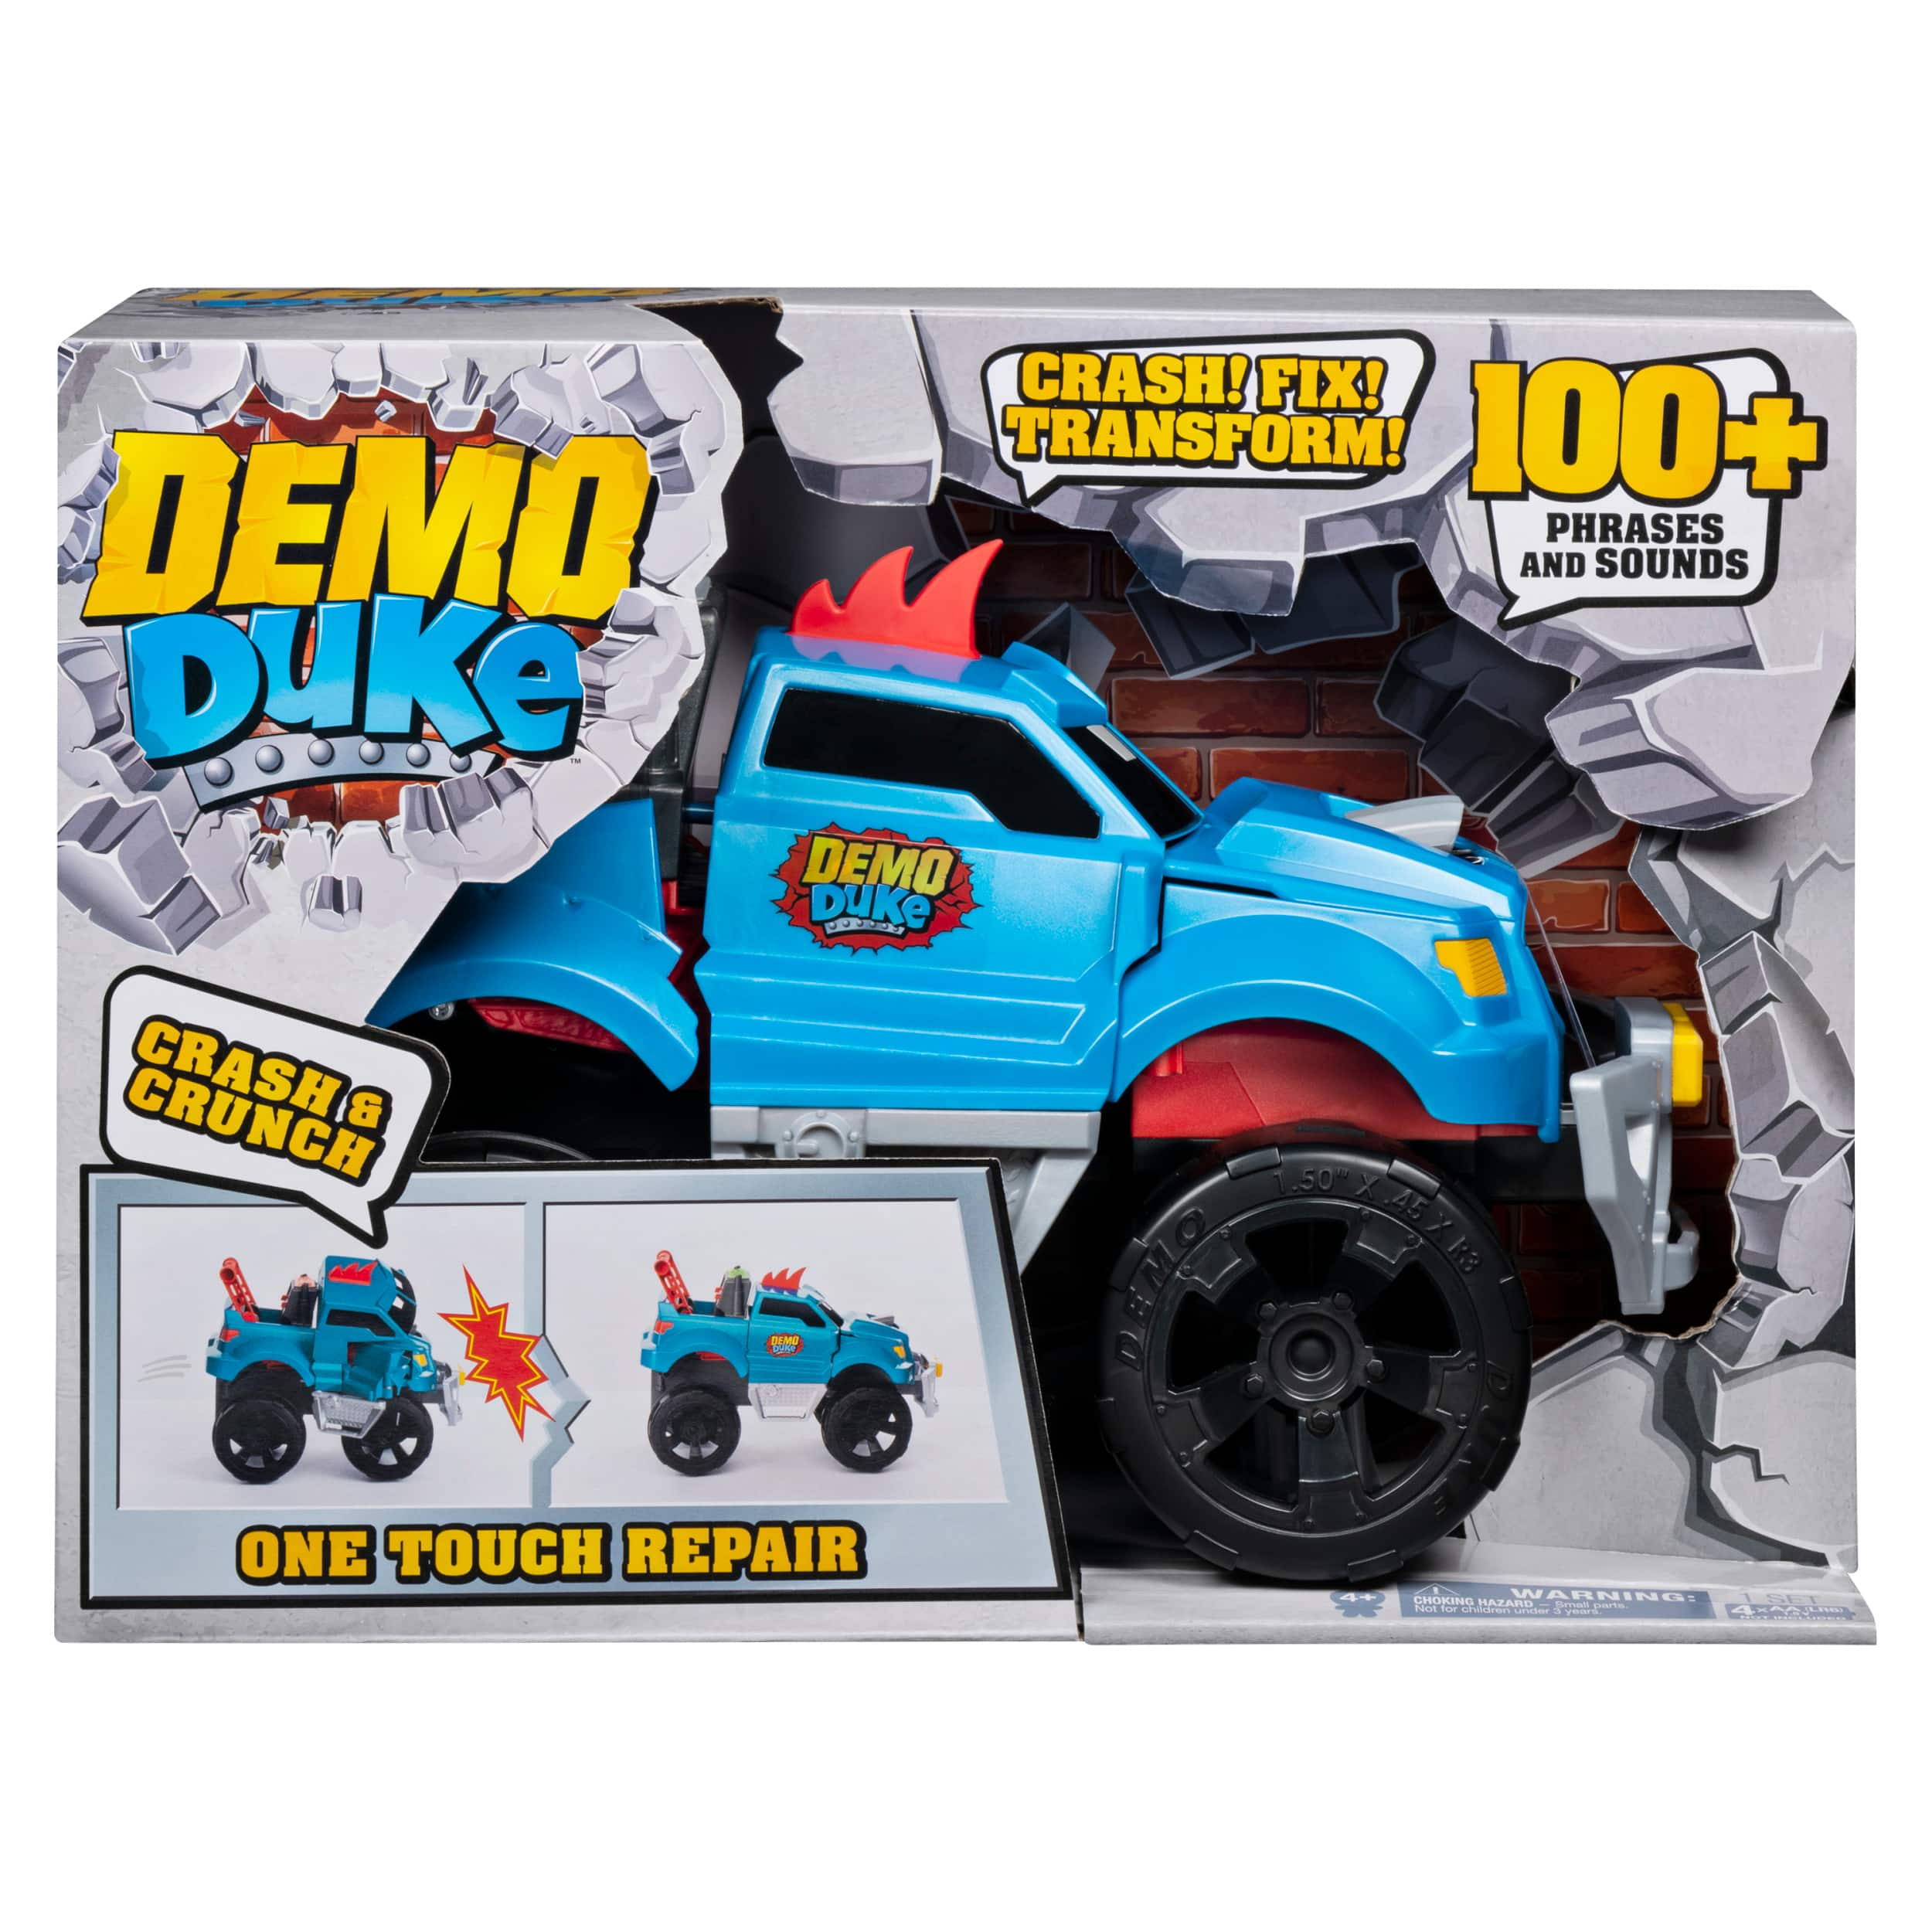 Demo Duke, Crashing and Transforming Vehicle with Over 100 Sounds and Phrases, for Kids Aged 4 and Up $19.88